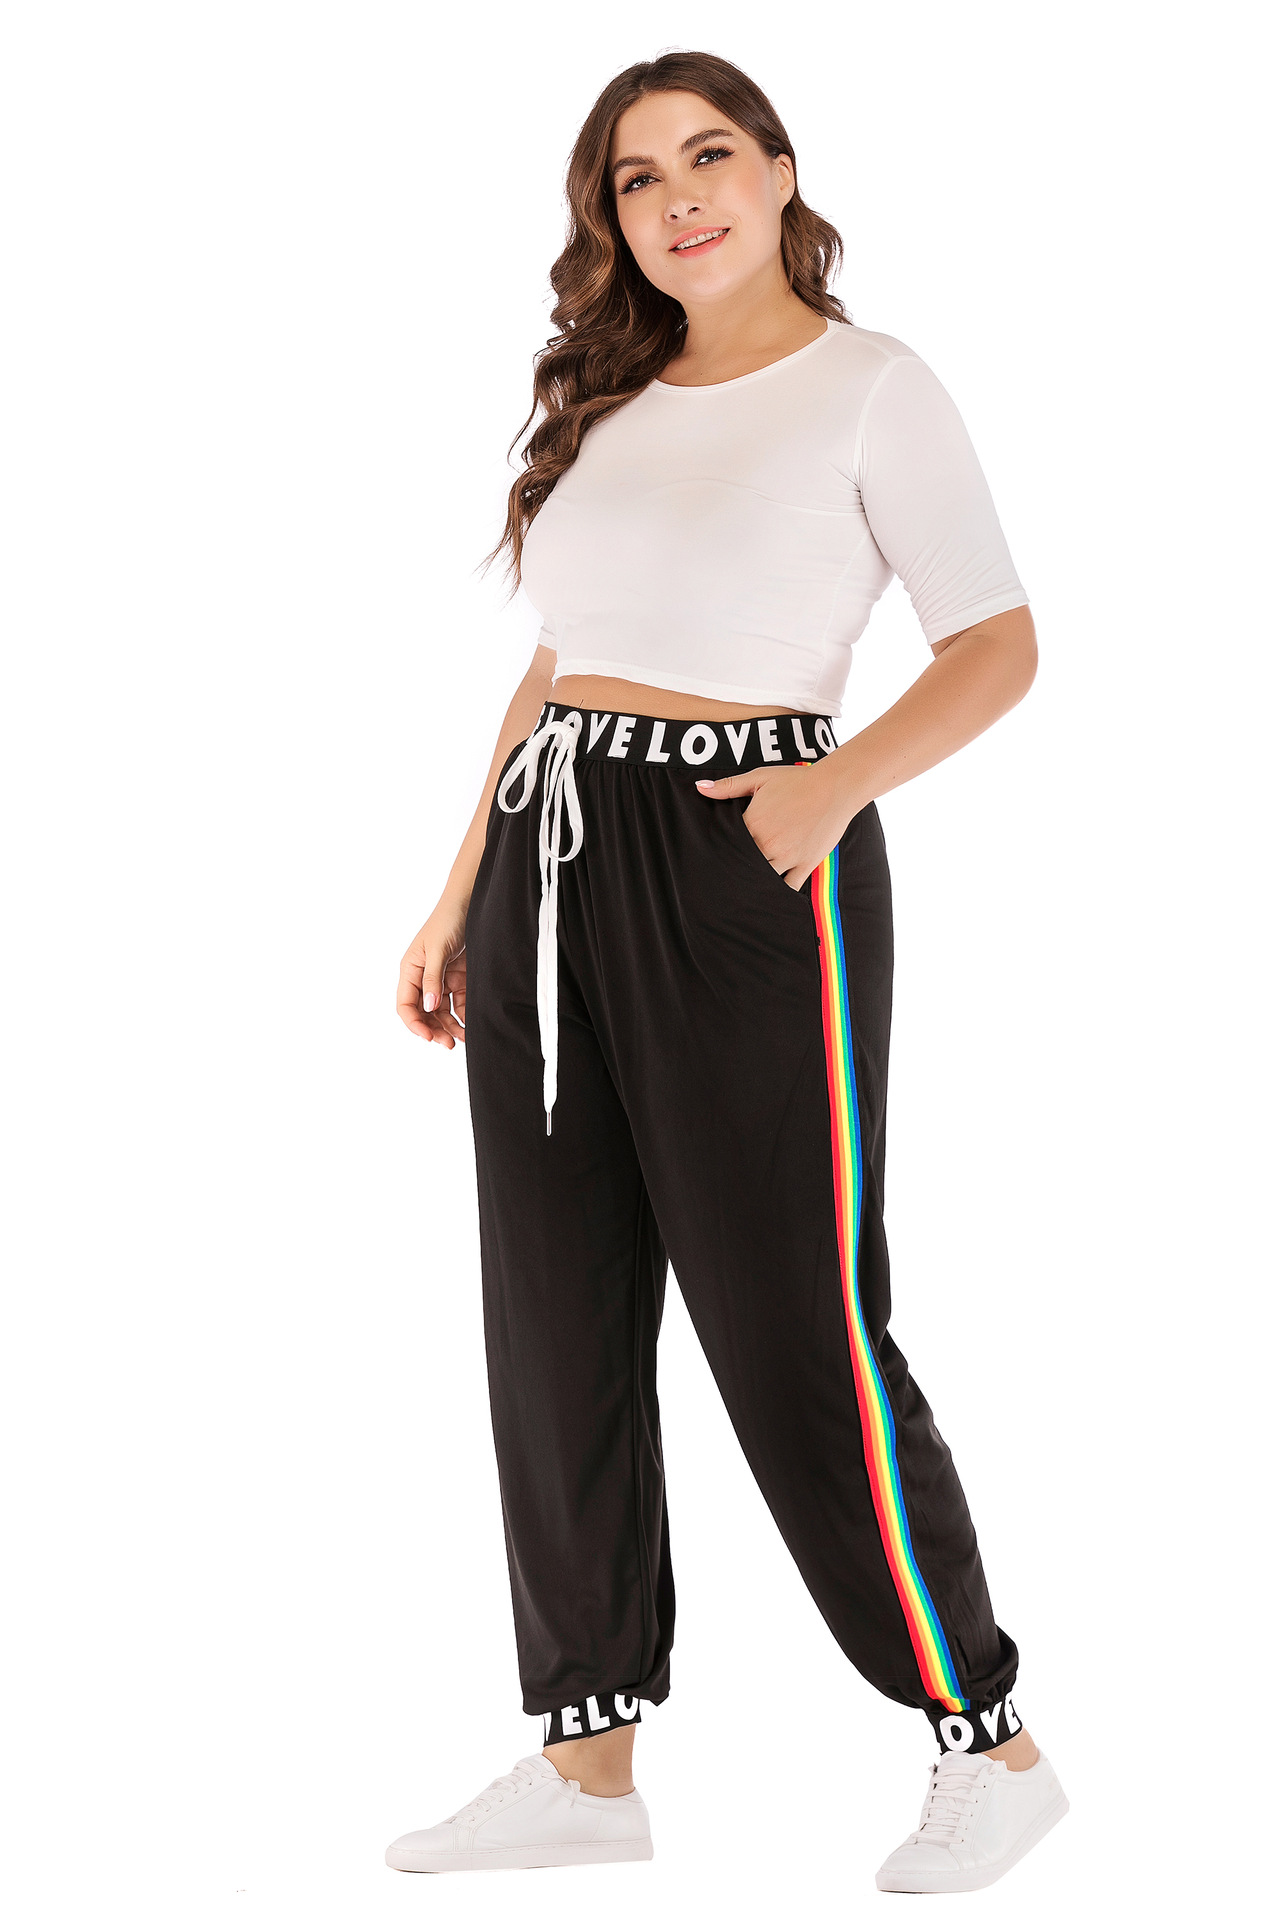 Fashion New Style Is Large Size Dress WOMEN'S Sport Pants Fitness Casual Pants Europe And America Hot Sales Large GIRL'S